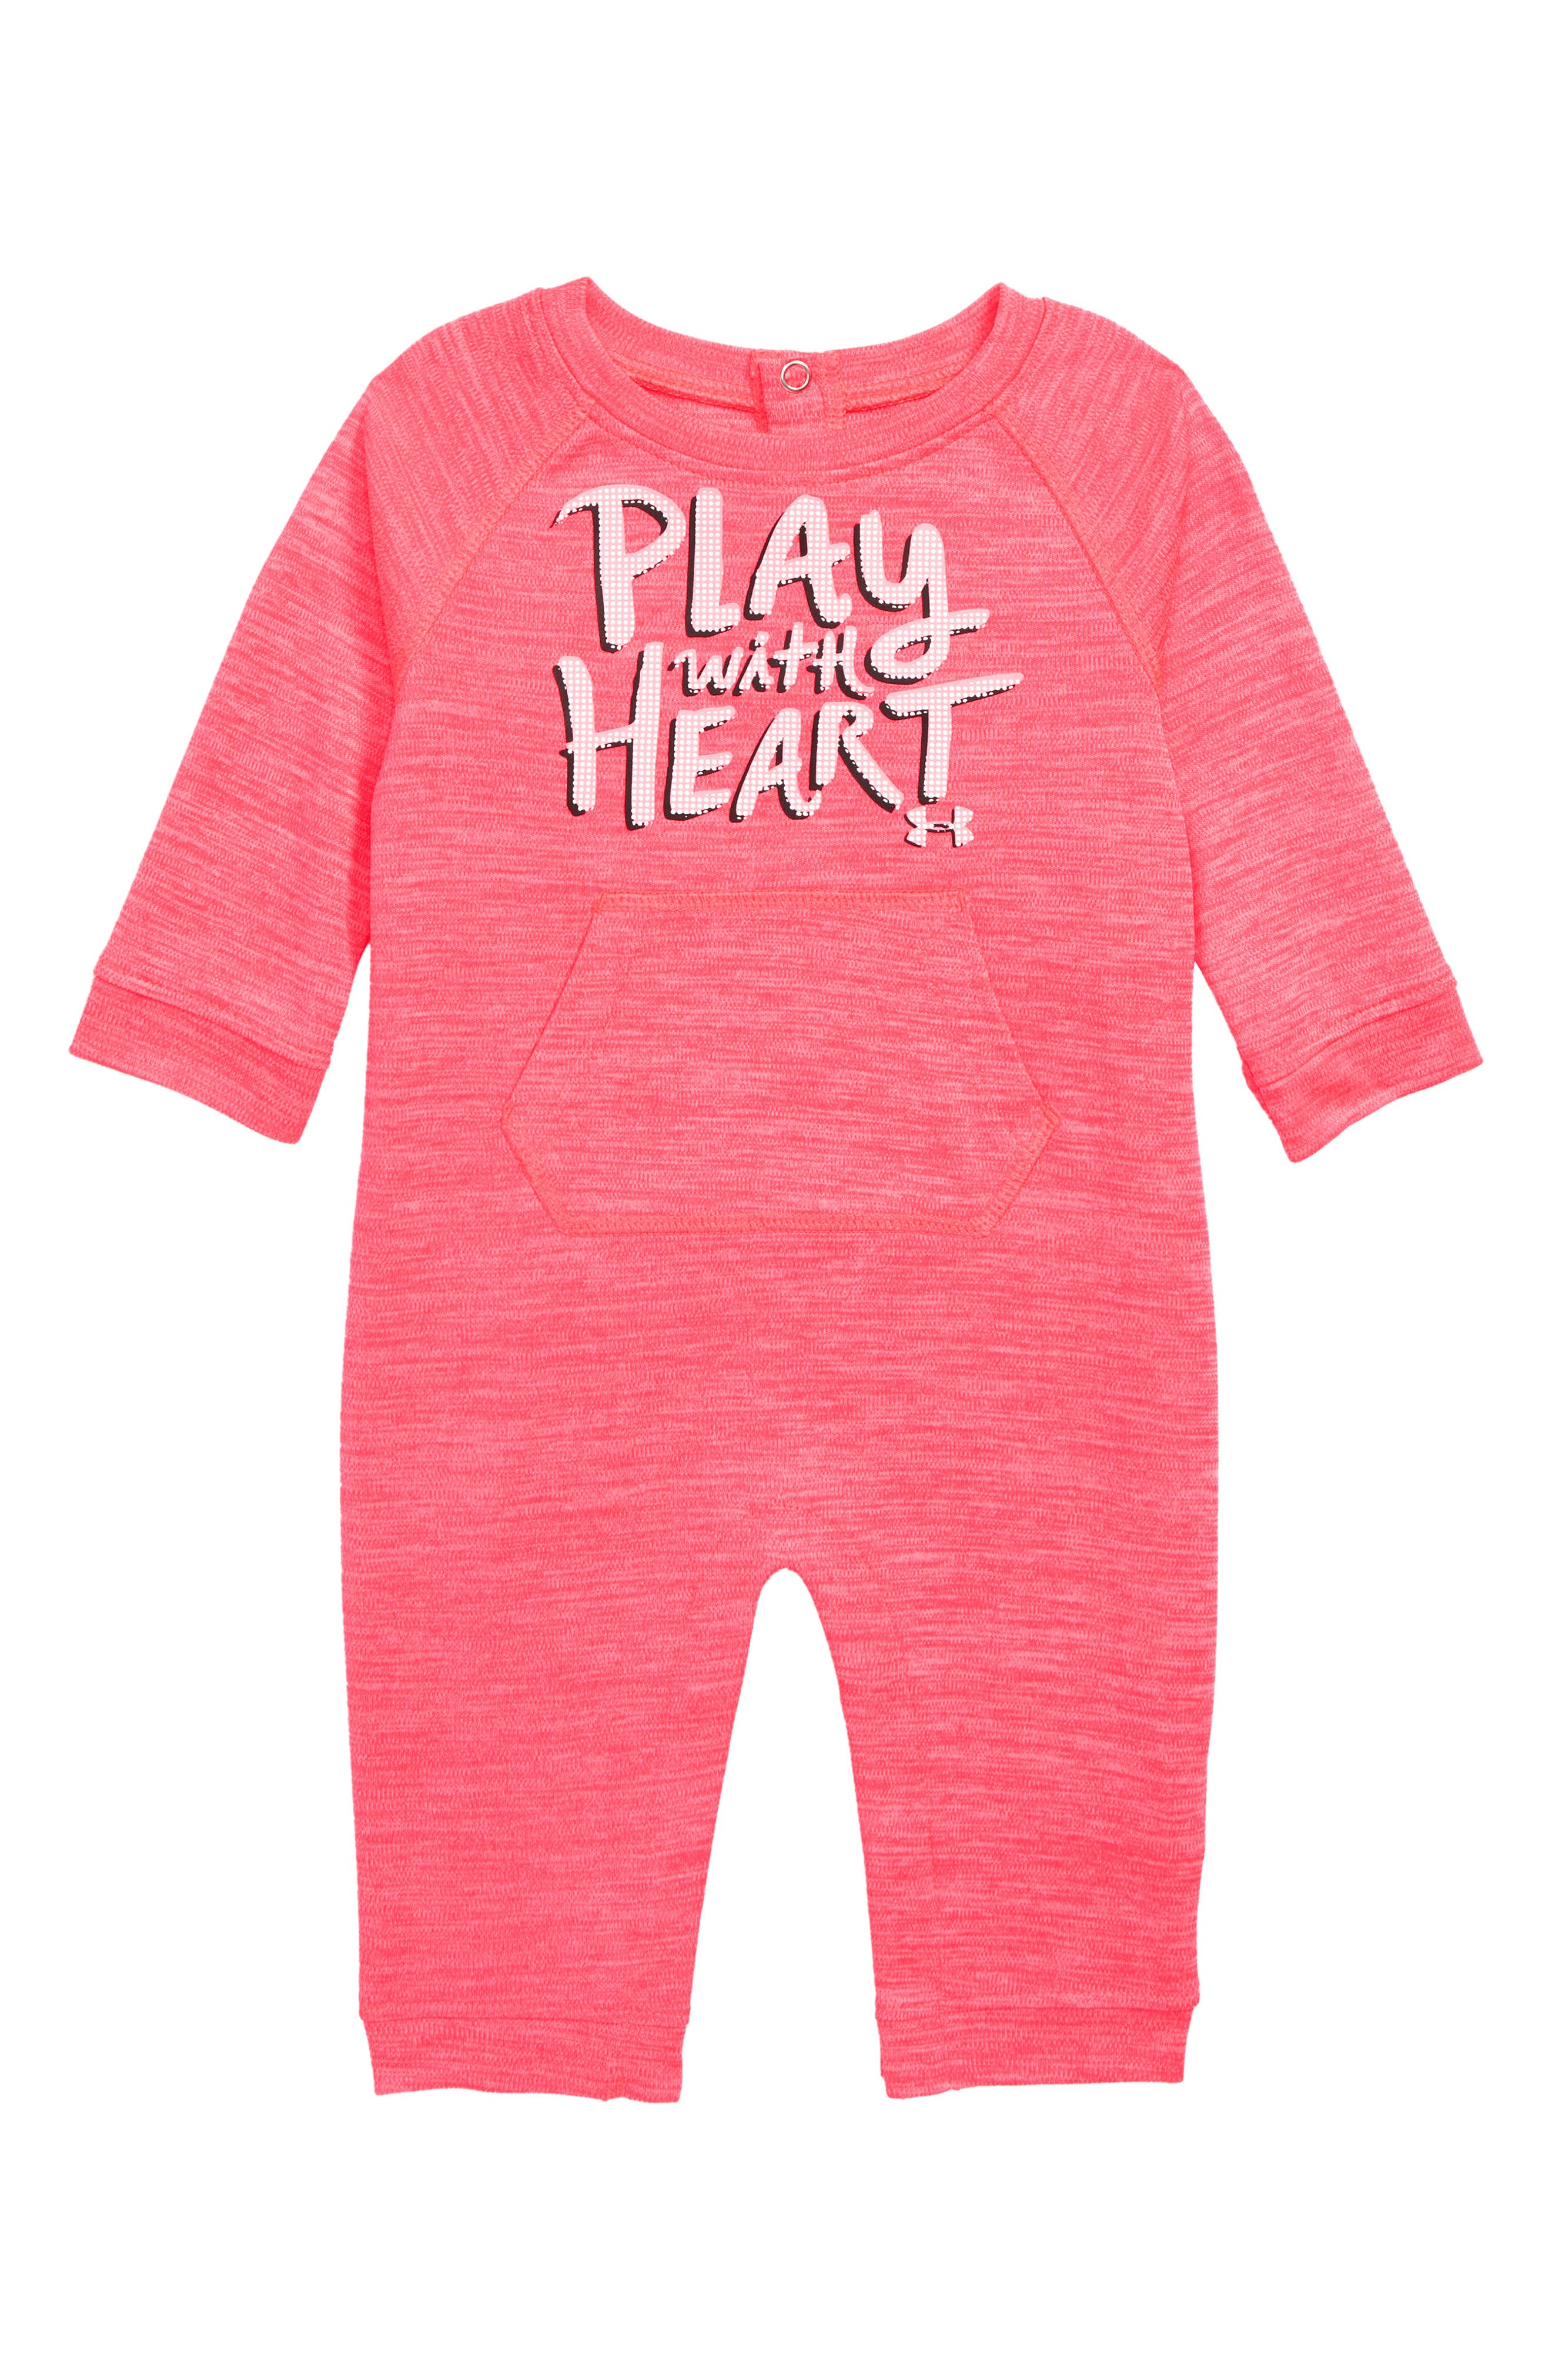 Play with Heart Graphic Romper,                             Main thumbnail 1, color,                             670